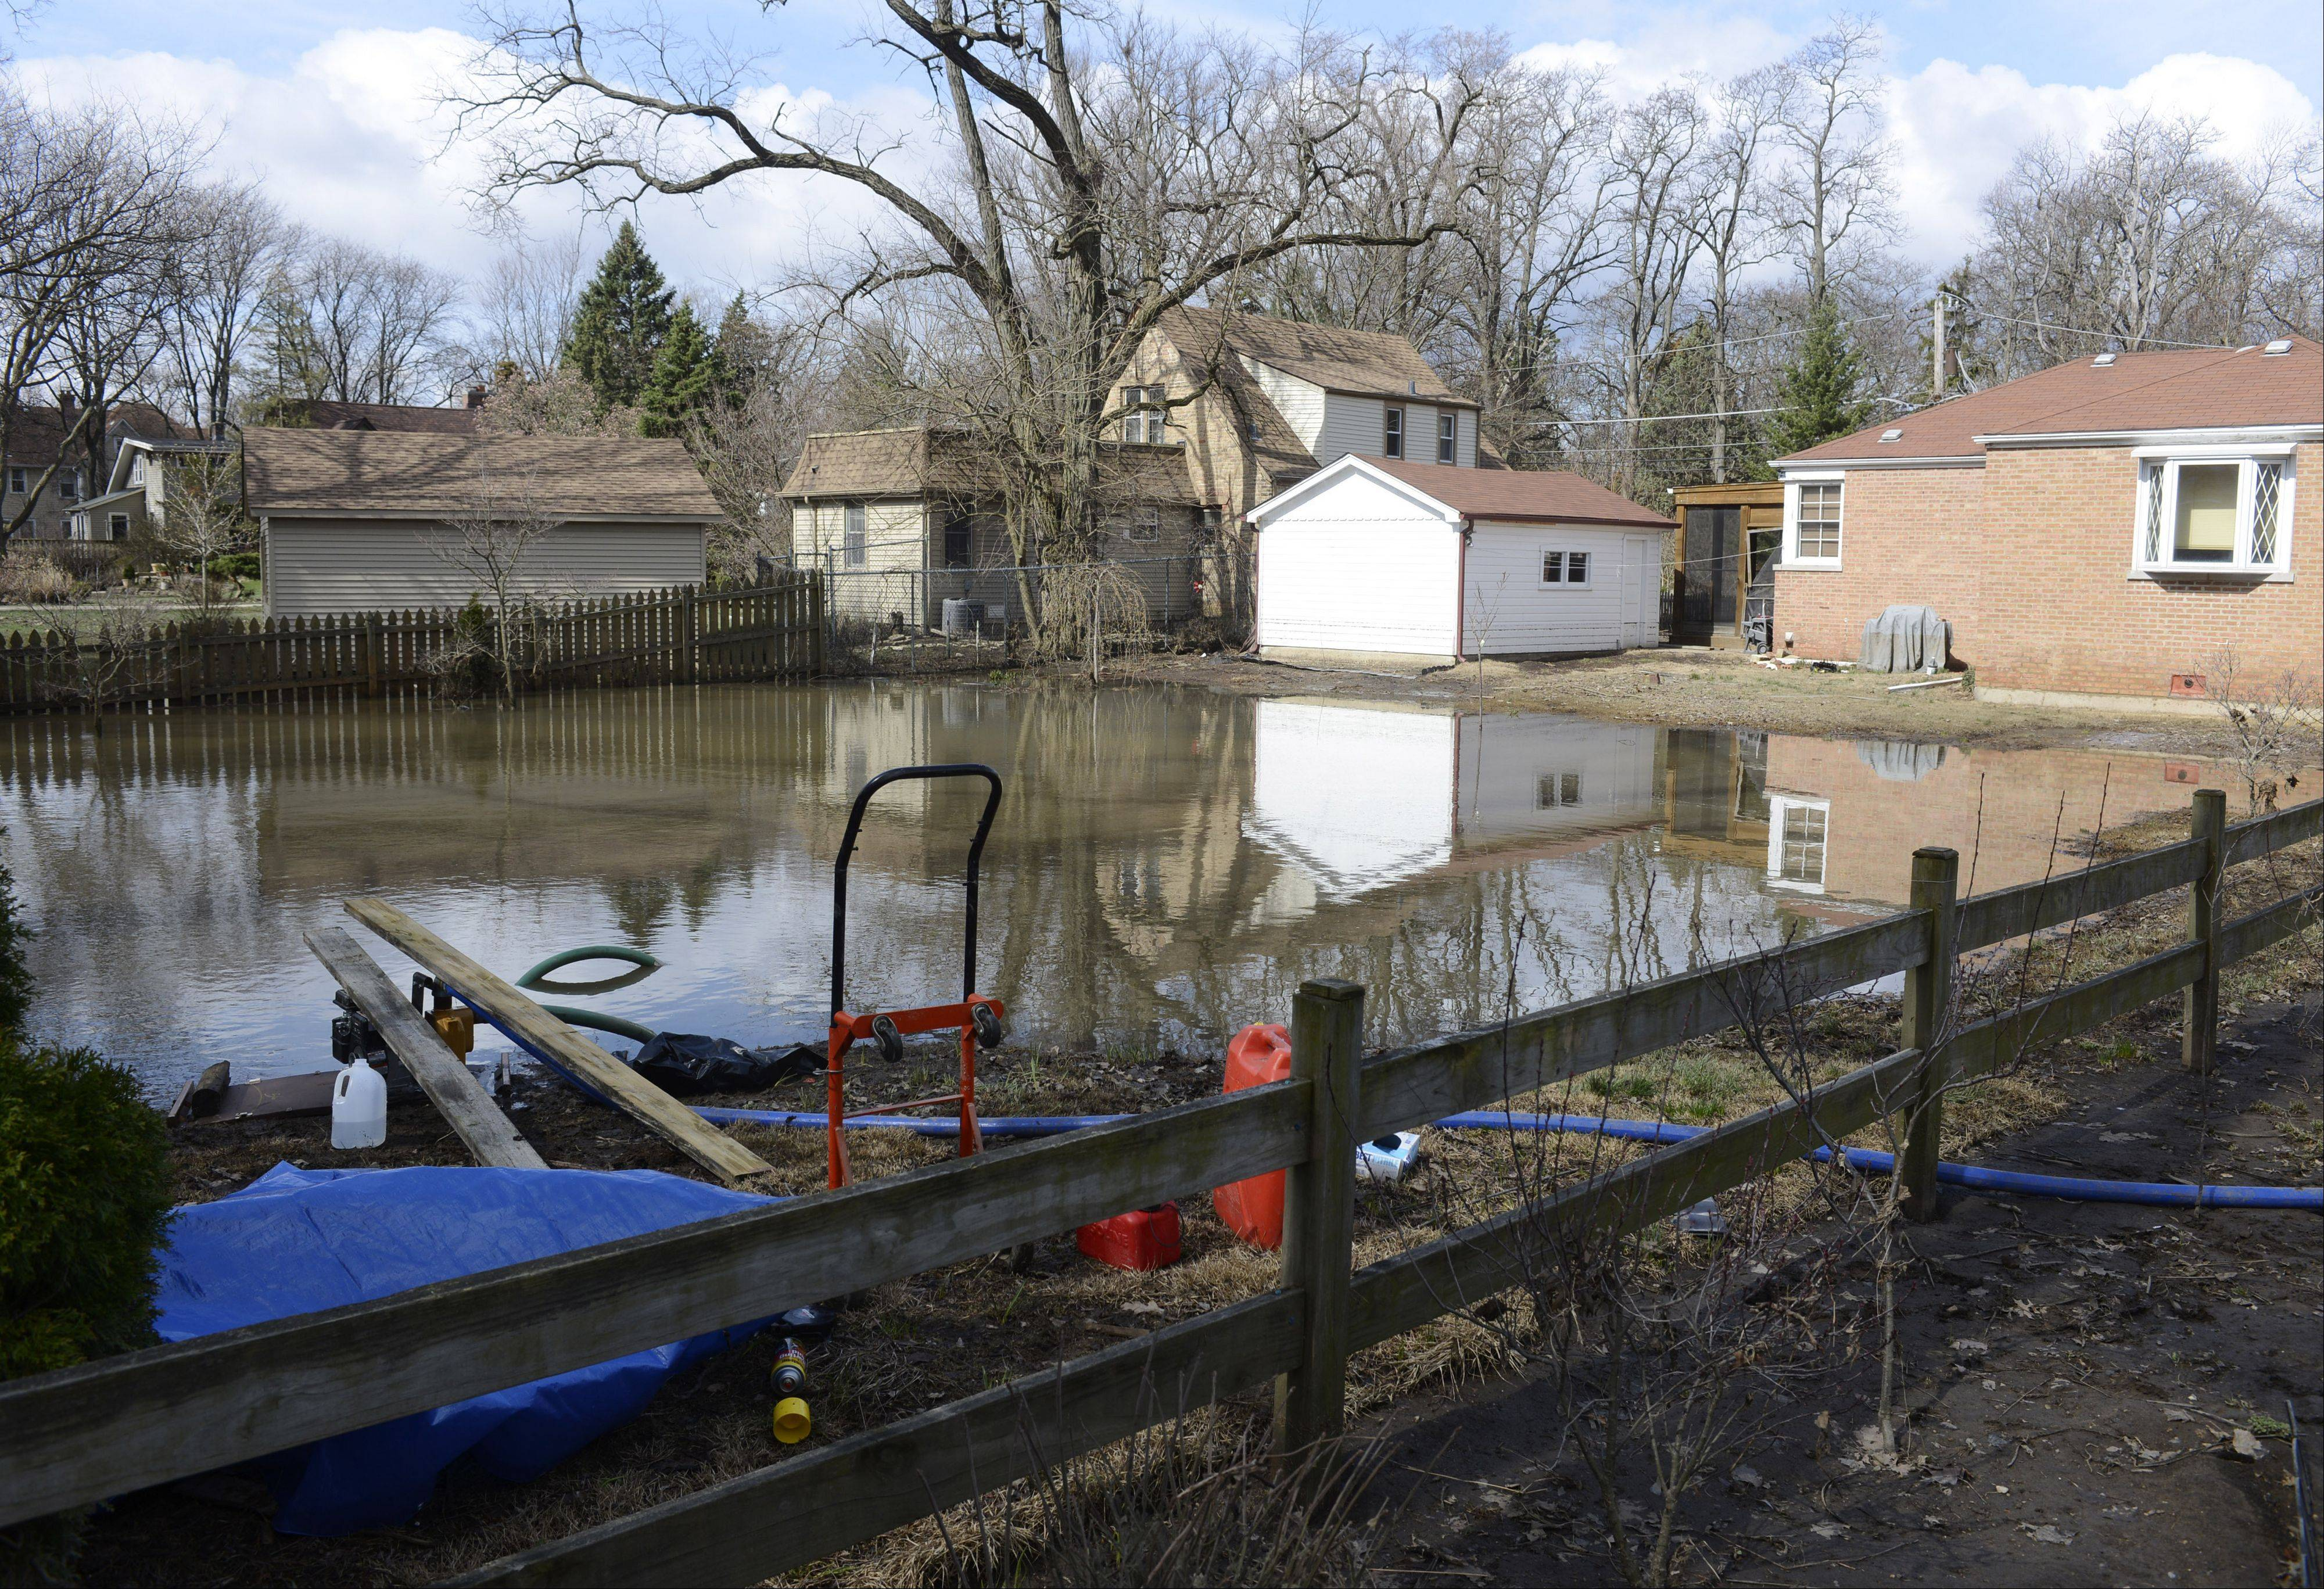 Des Plaines residents impacted by severe weather like April's floods could get help from the city sooner if aldermen approve a pending measure that would allow for permit fees to be waived immediately upon a disaster declaration from the mayor.